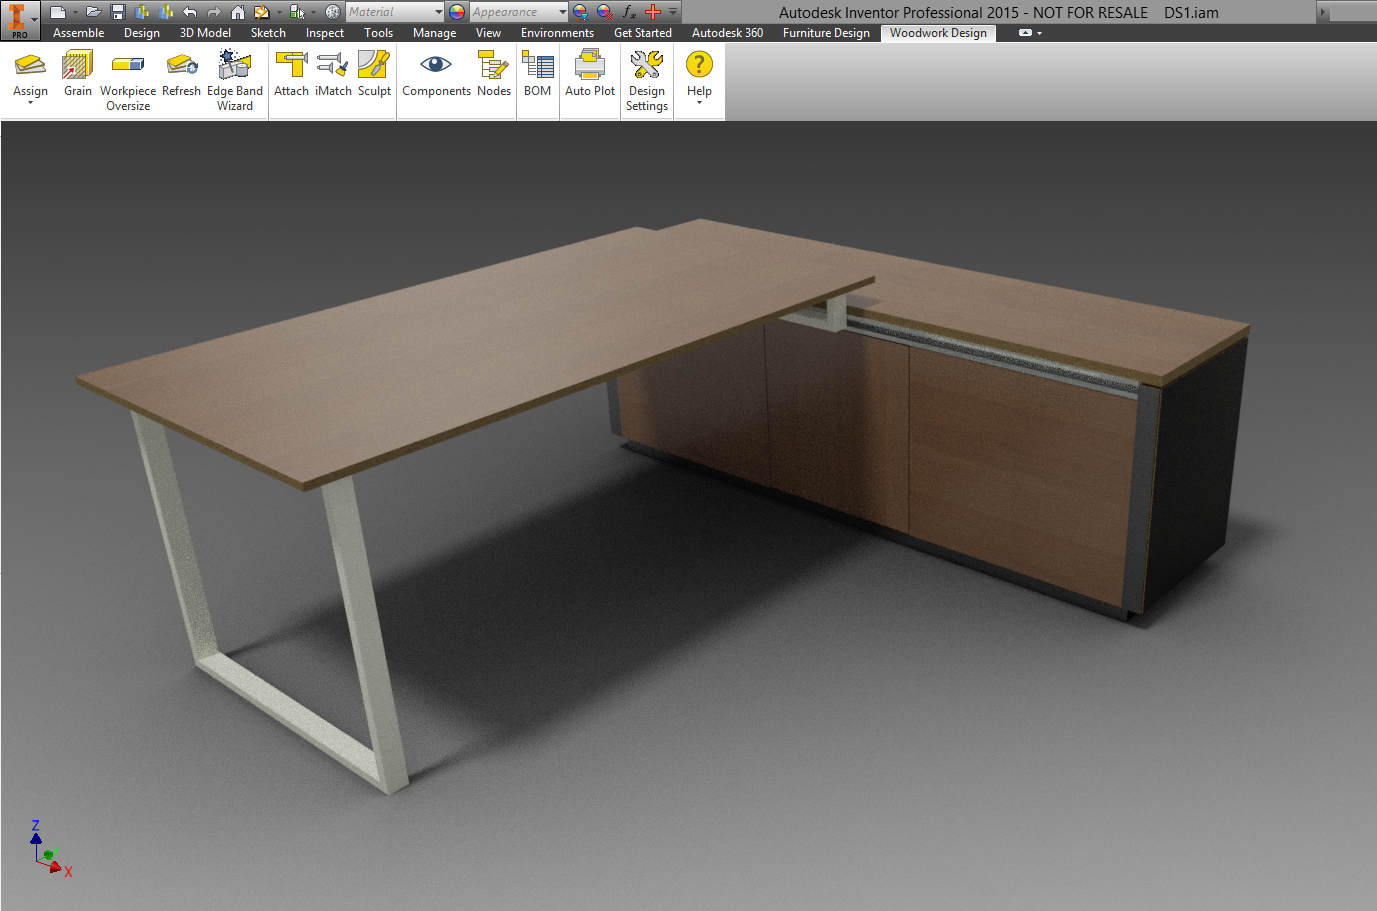 Woodwork for inventor blogcriteria for the selection of for Furniture design software online